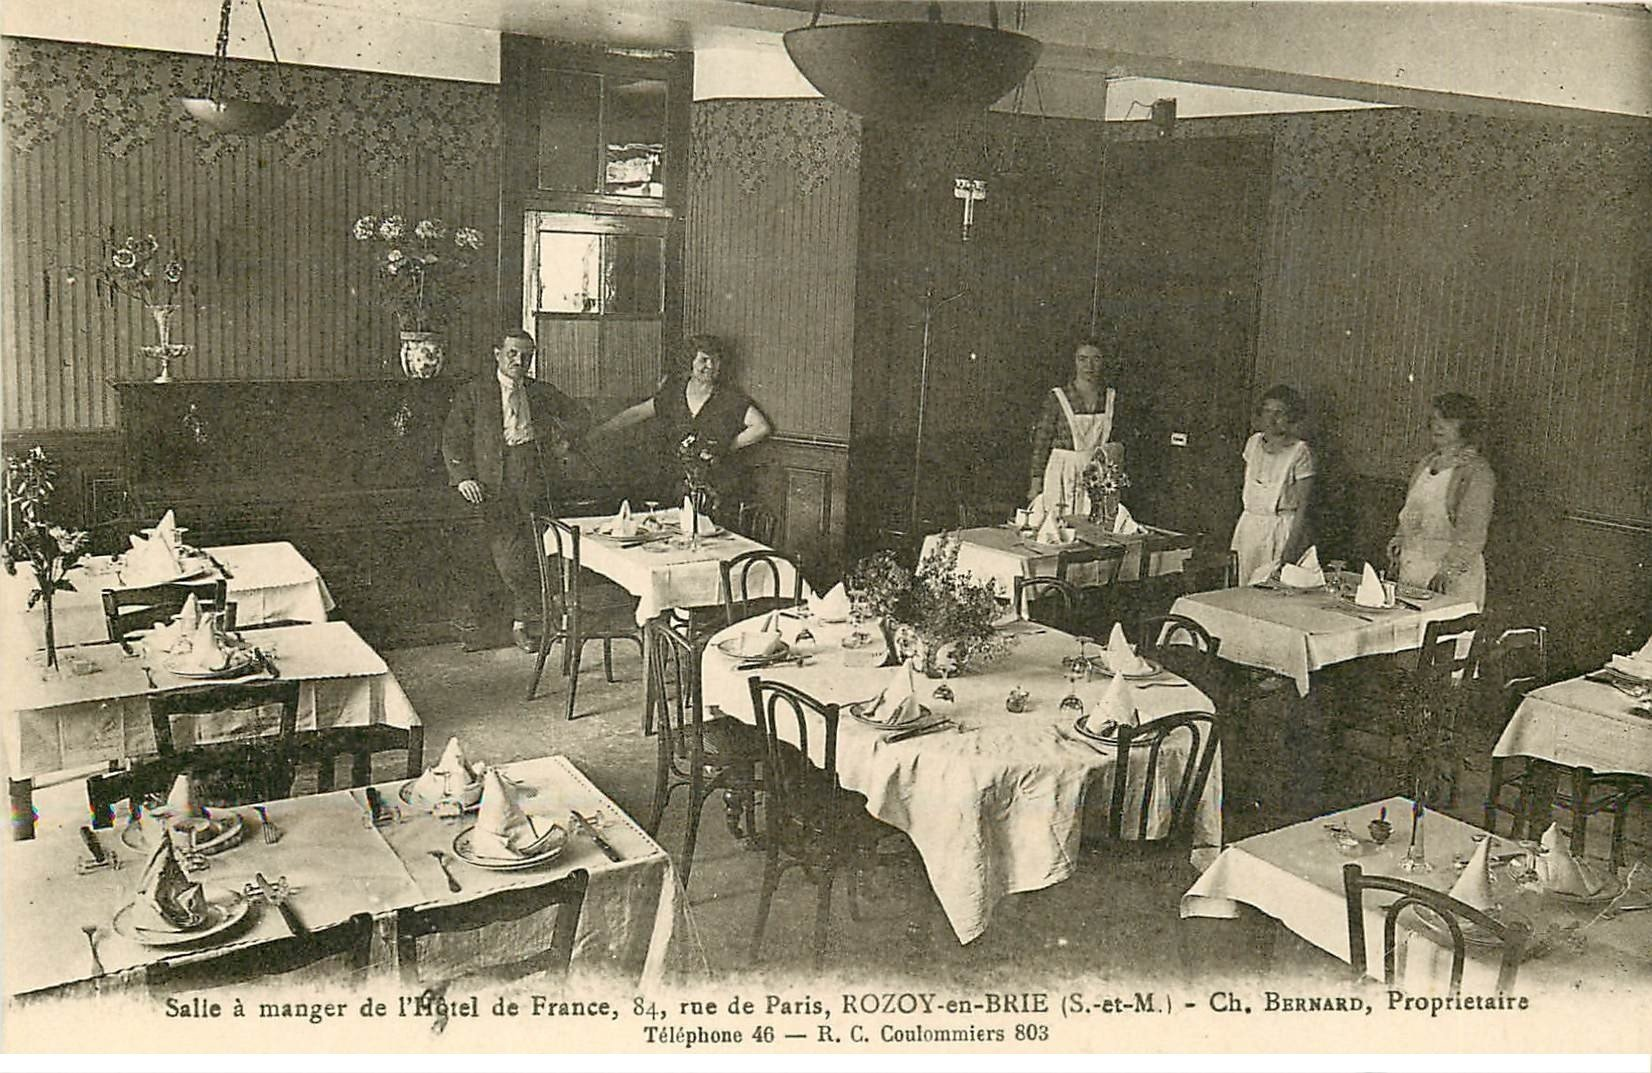 77 rozay rozoy en brie h tel de france salle manger 84 for Carte de france hotel